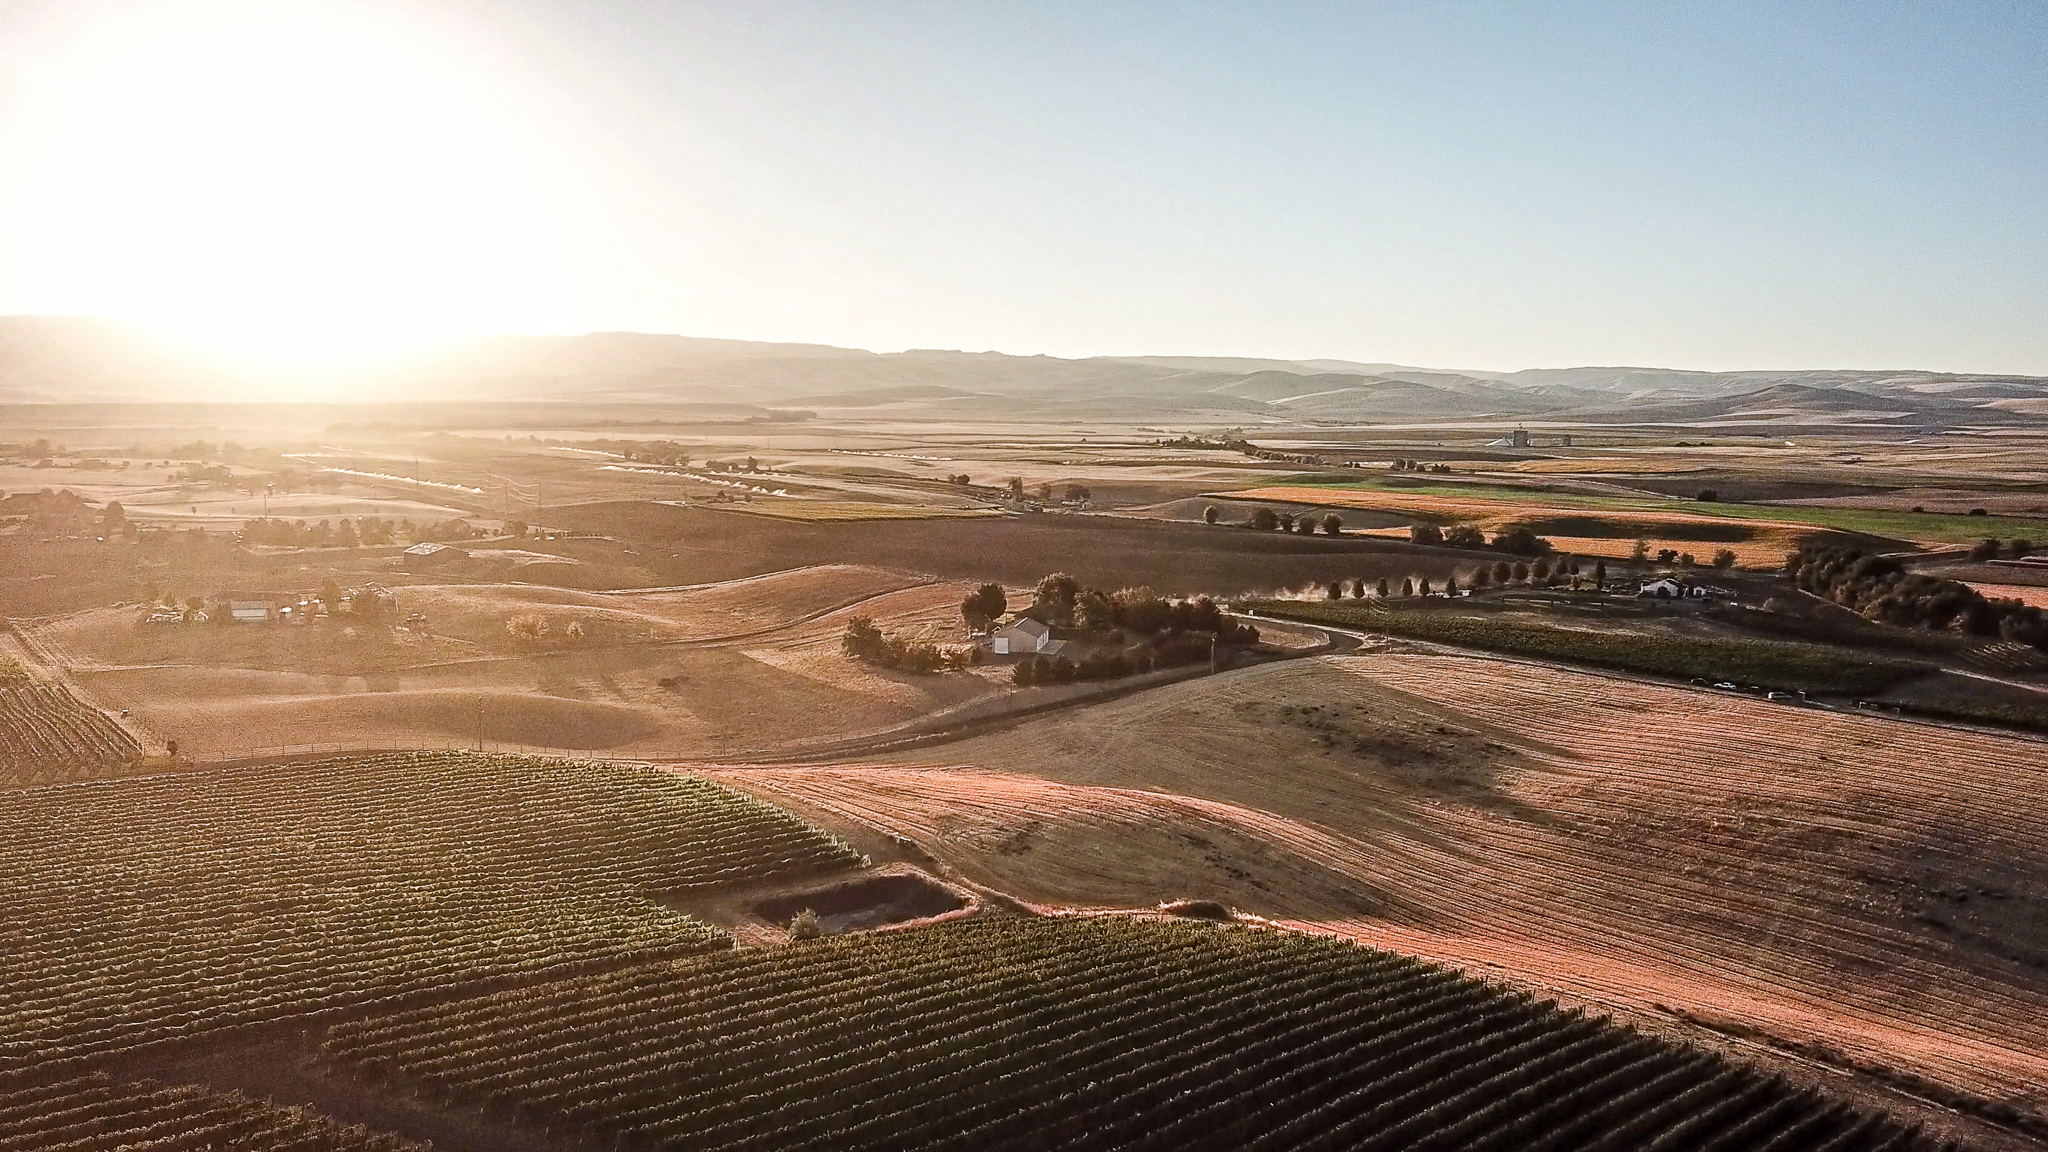 Aerial view of blocks of vineyards and other crops with tan sections between. The sun is in the left upper corner and the sky is muted blue.